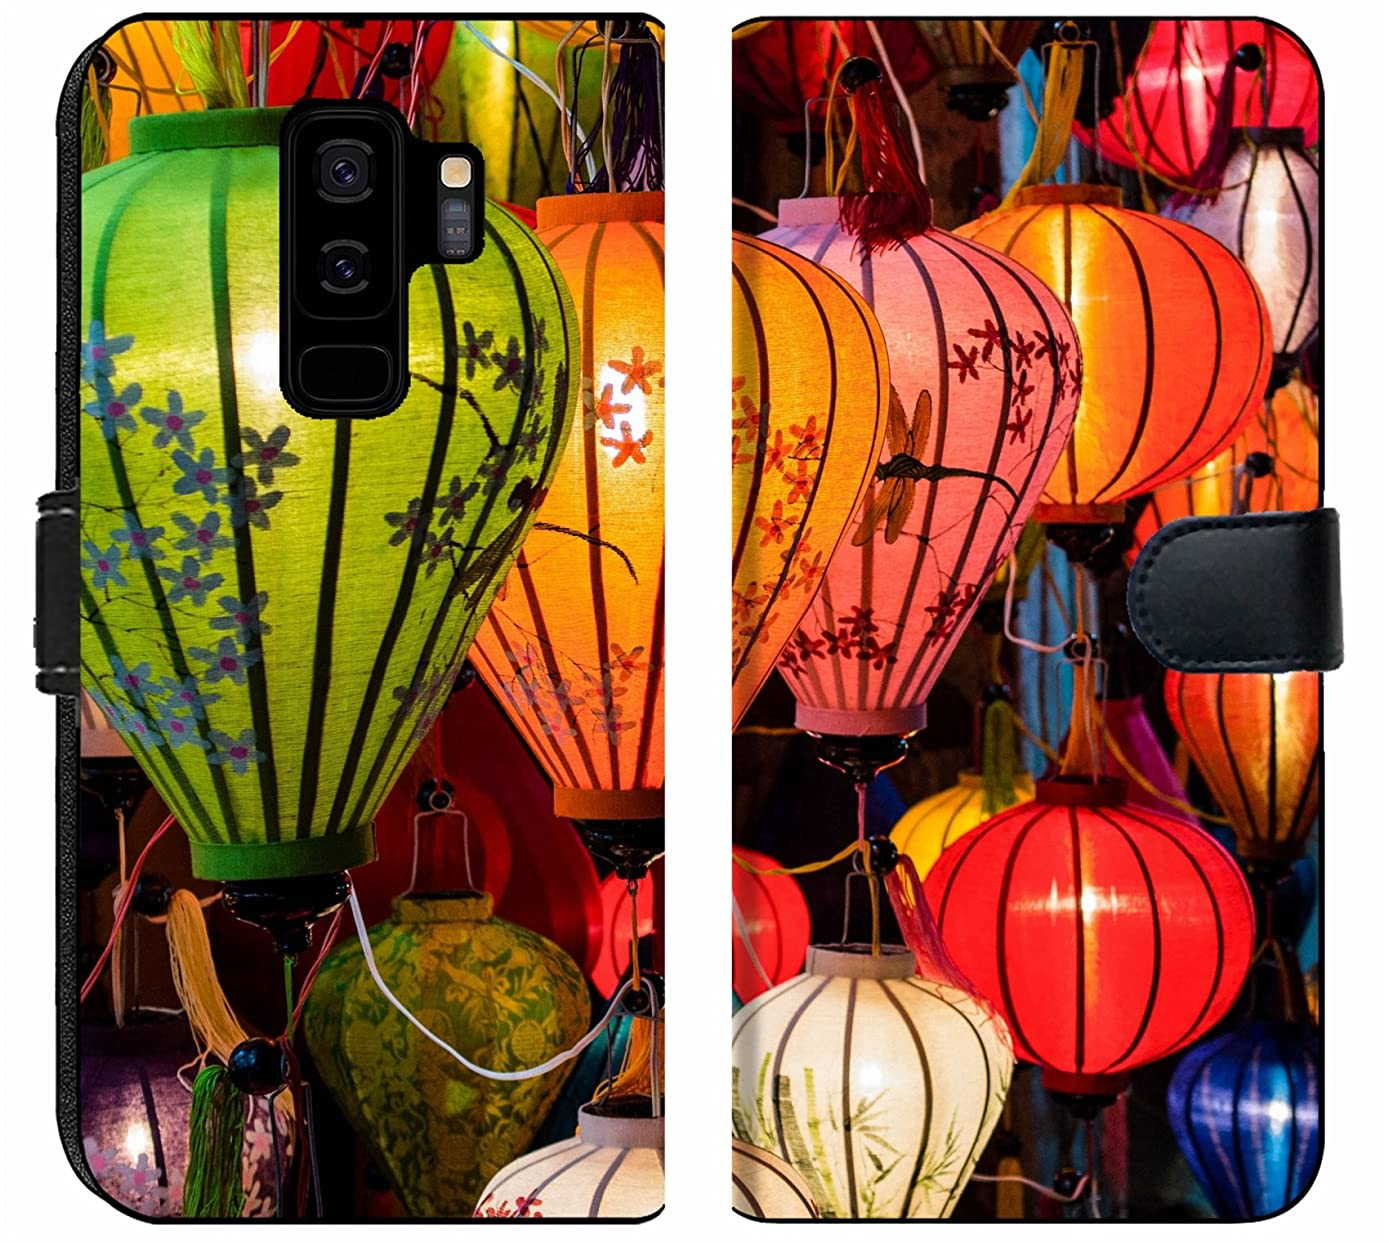 Samsung Galaxy S9 Plus Fabric Wallet Case Image ID: 31089698 Traditional Lamps in Old Town Hoi an Central Vietnam